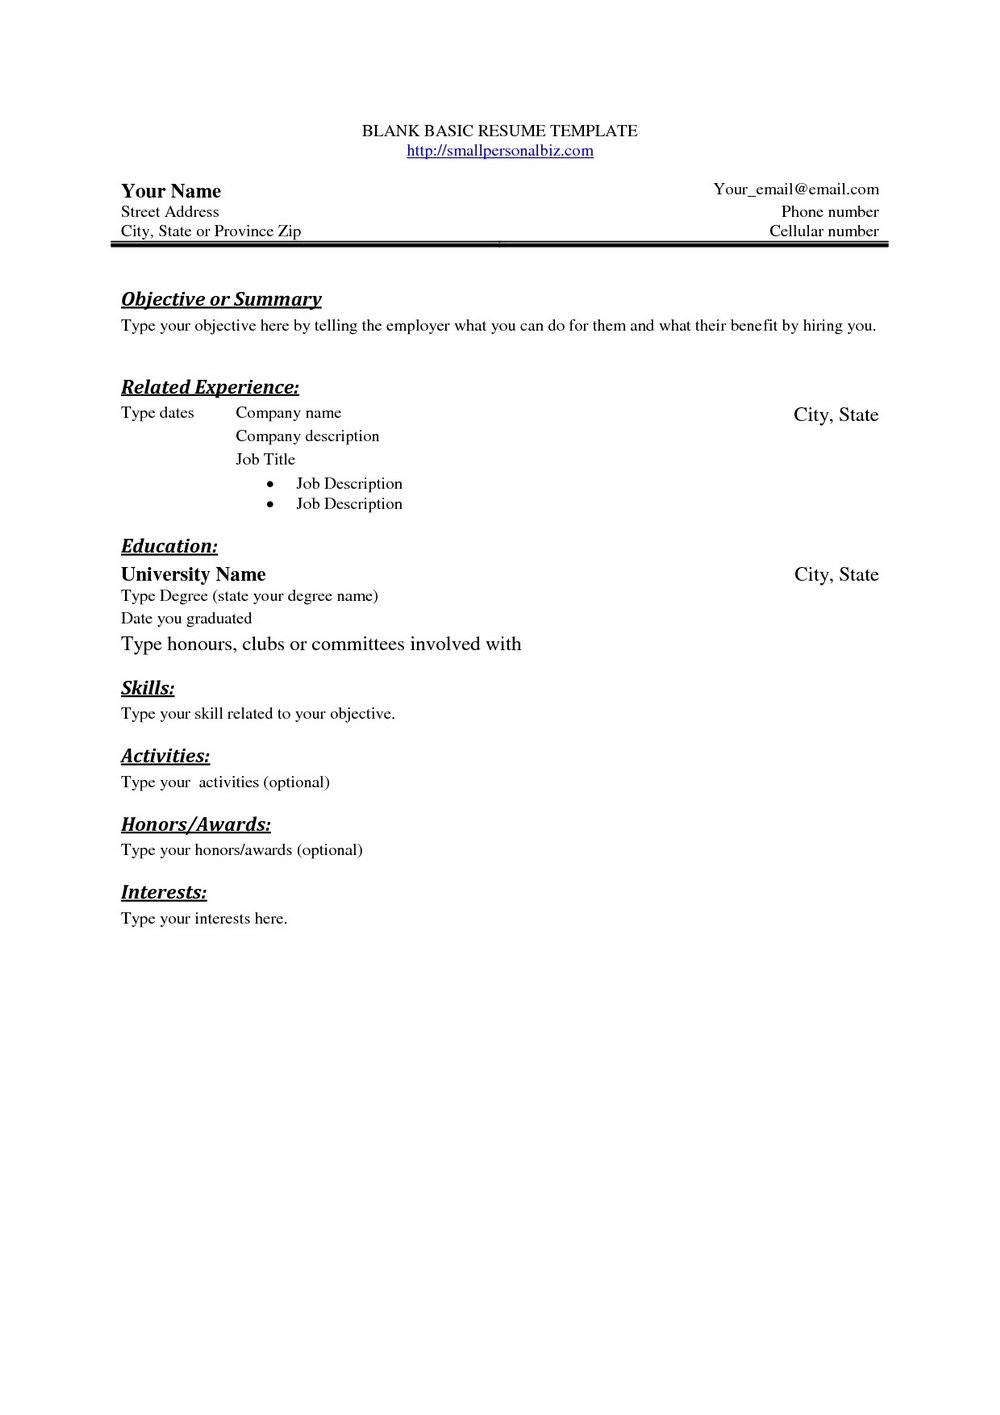 Free Online College Resume Builder